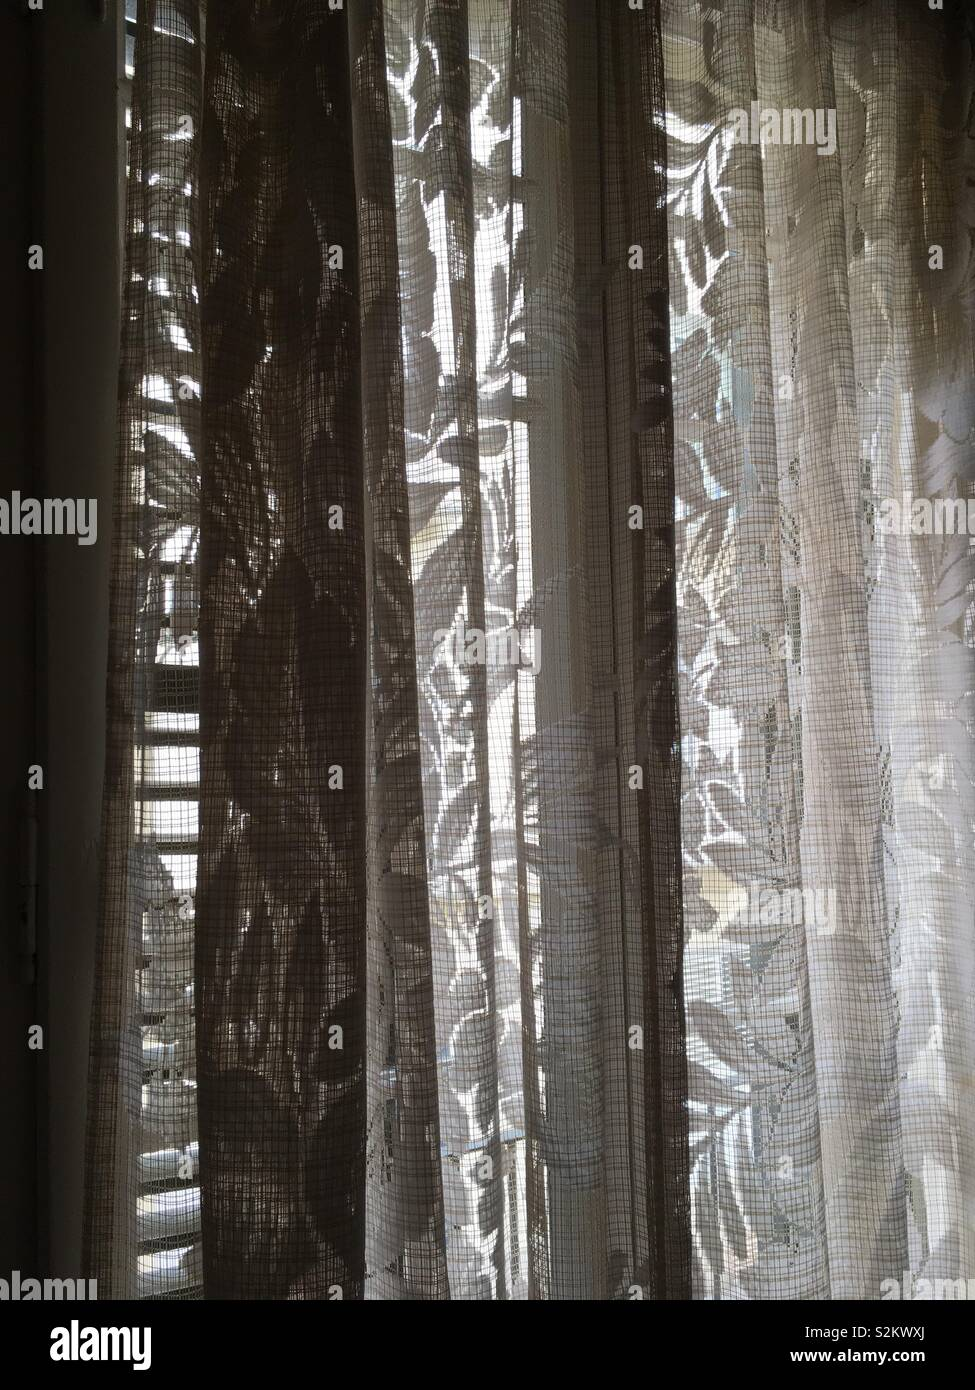 Light through net curtains and wooden slats - Stock Image